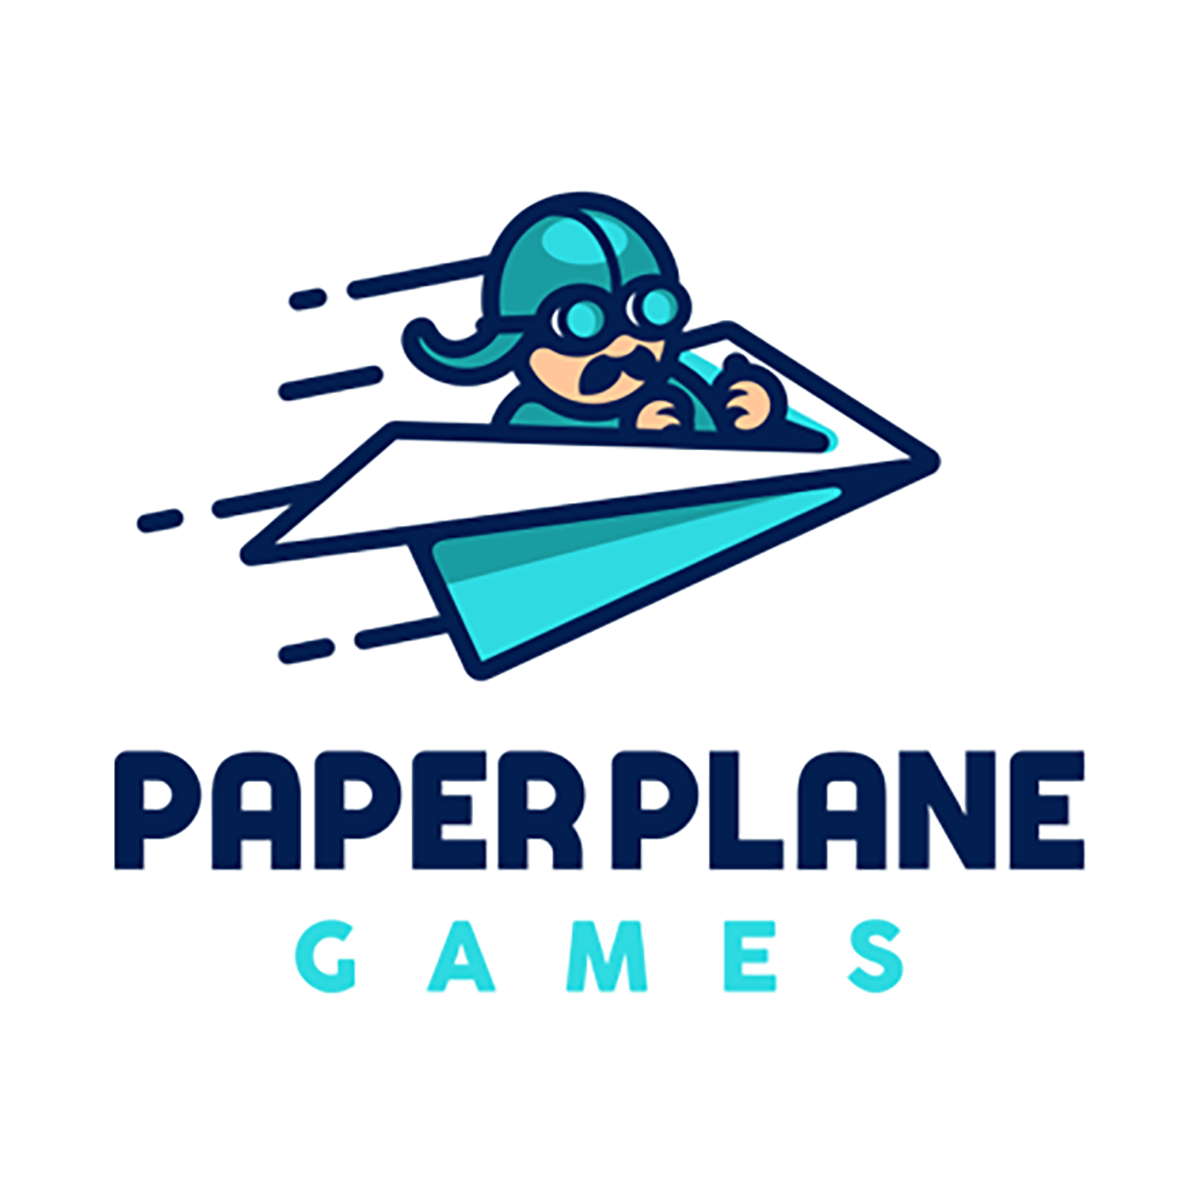 Paperplane Games